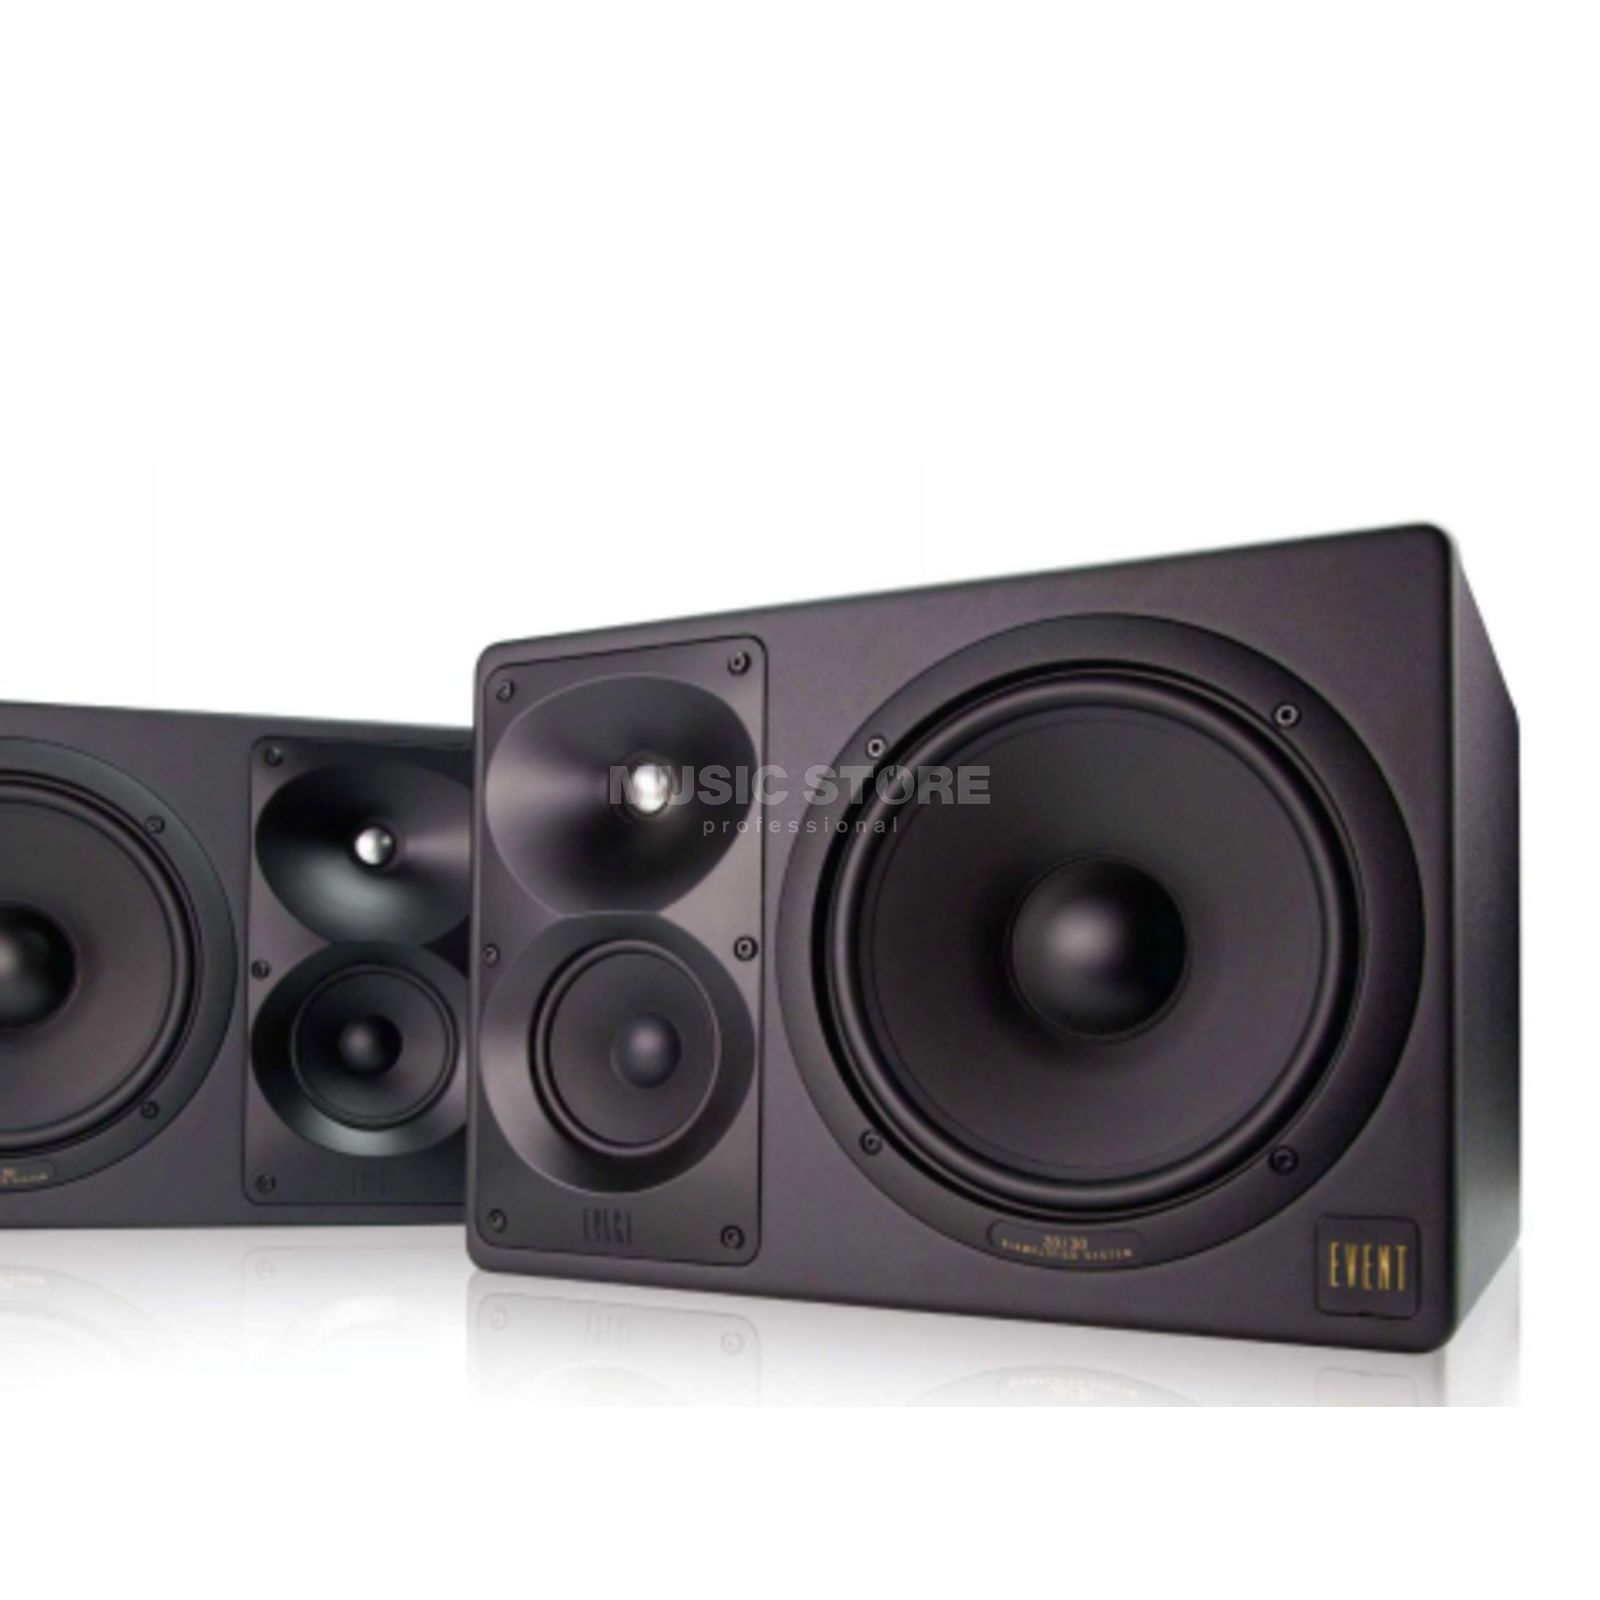 Event Electronics 20/30 bas Right Speaker 3-Way Active Studio Monitor Produktbillede